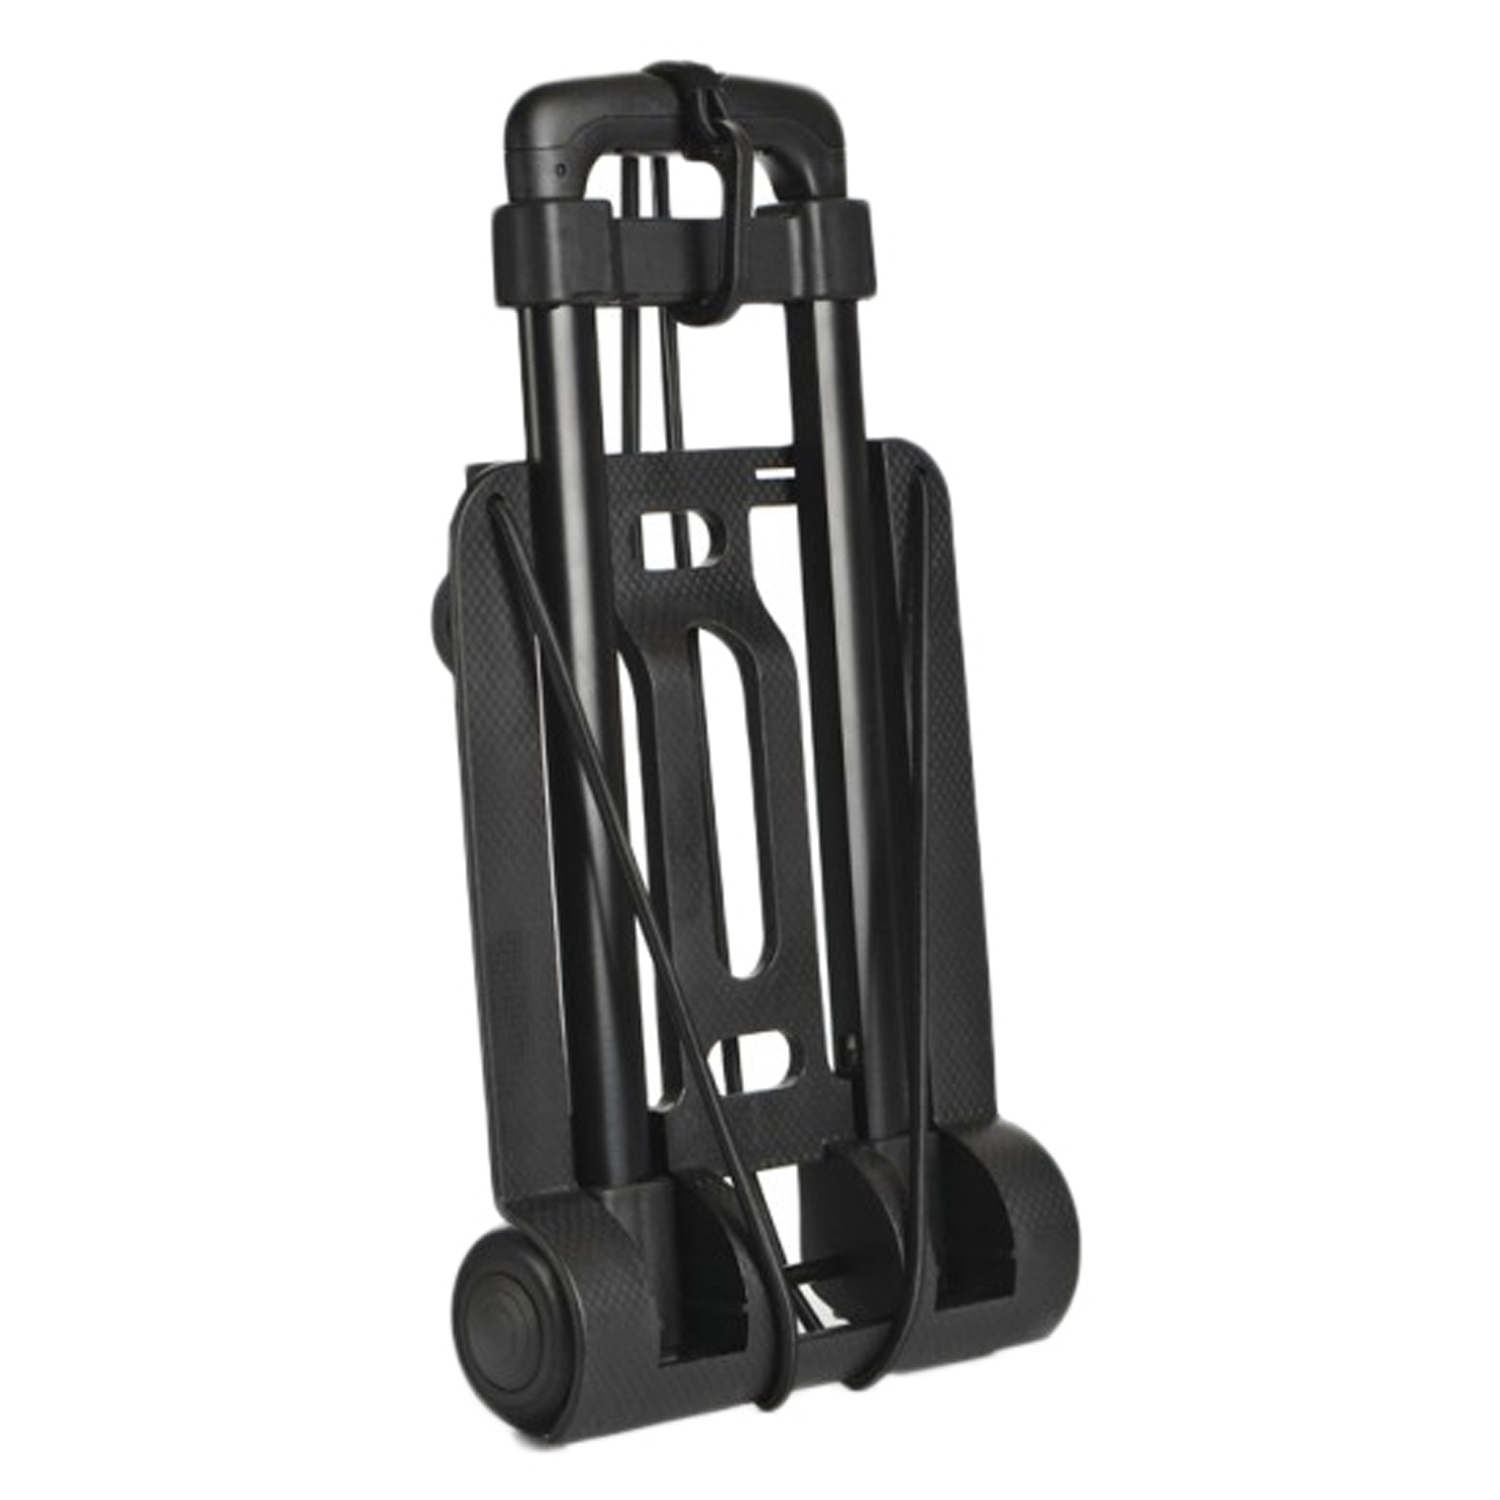 Image of Travel Blue Deluxe Luggage Trolley